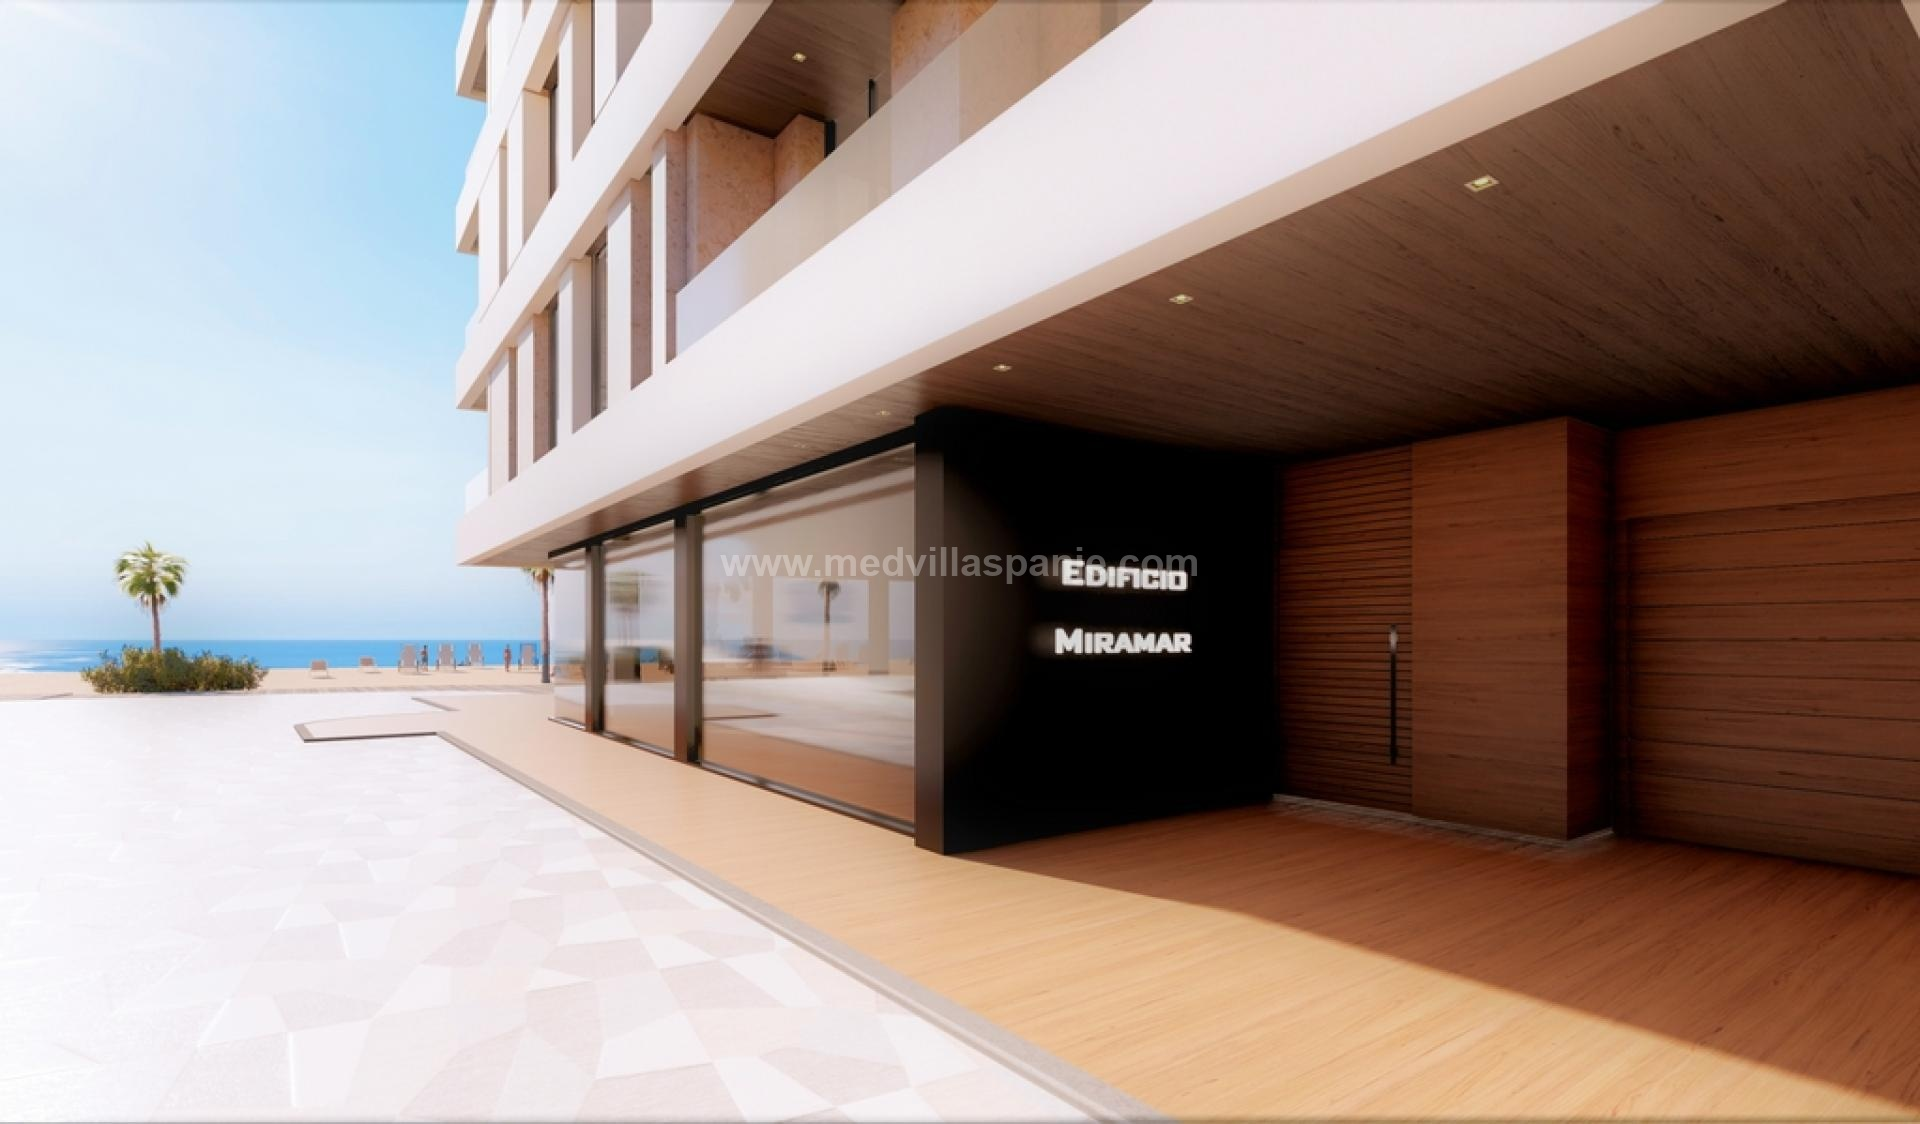 Apartments first beach line located in La Mata, Torrevieja in Medvilla Spanje